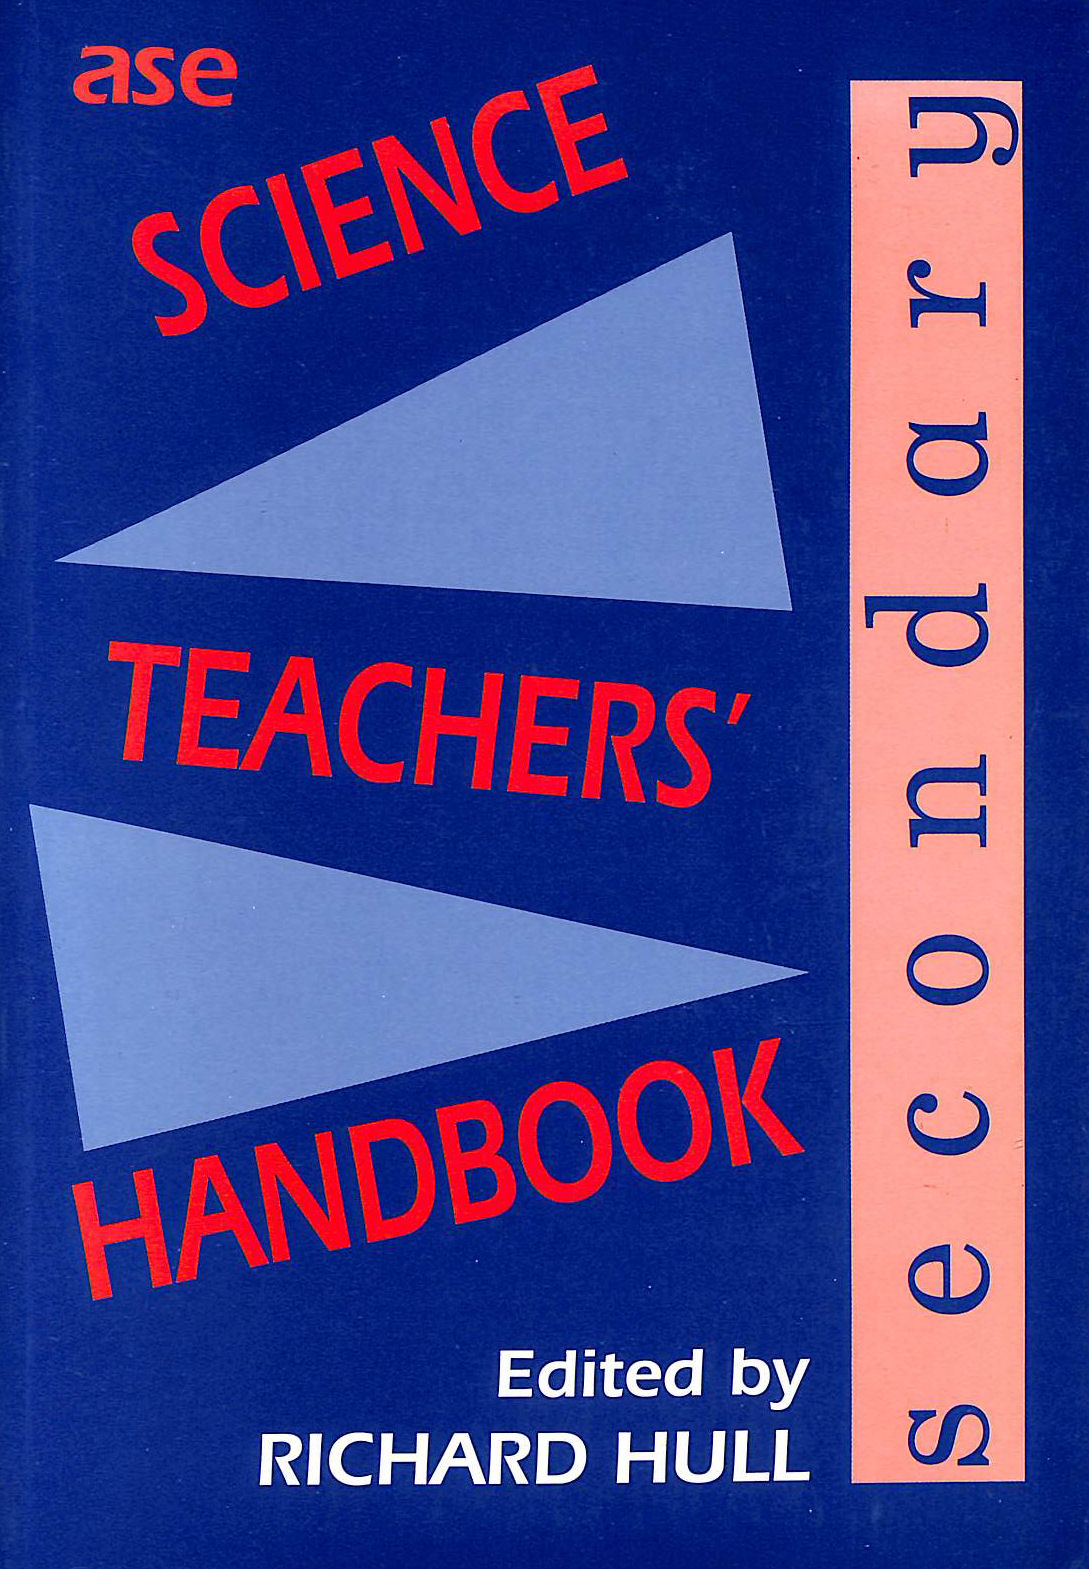 Image for ASE Secondary Science Teachers' Handbook